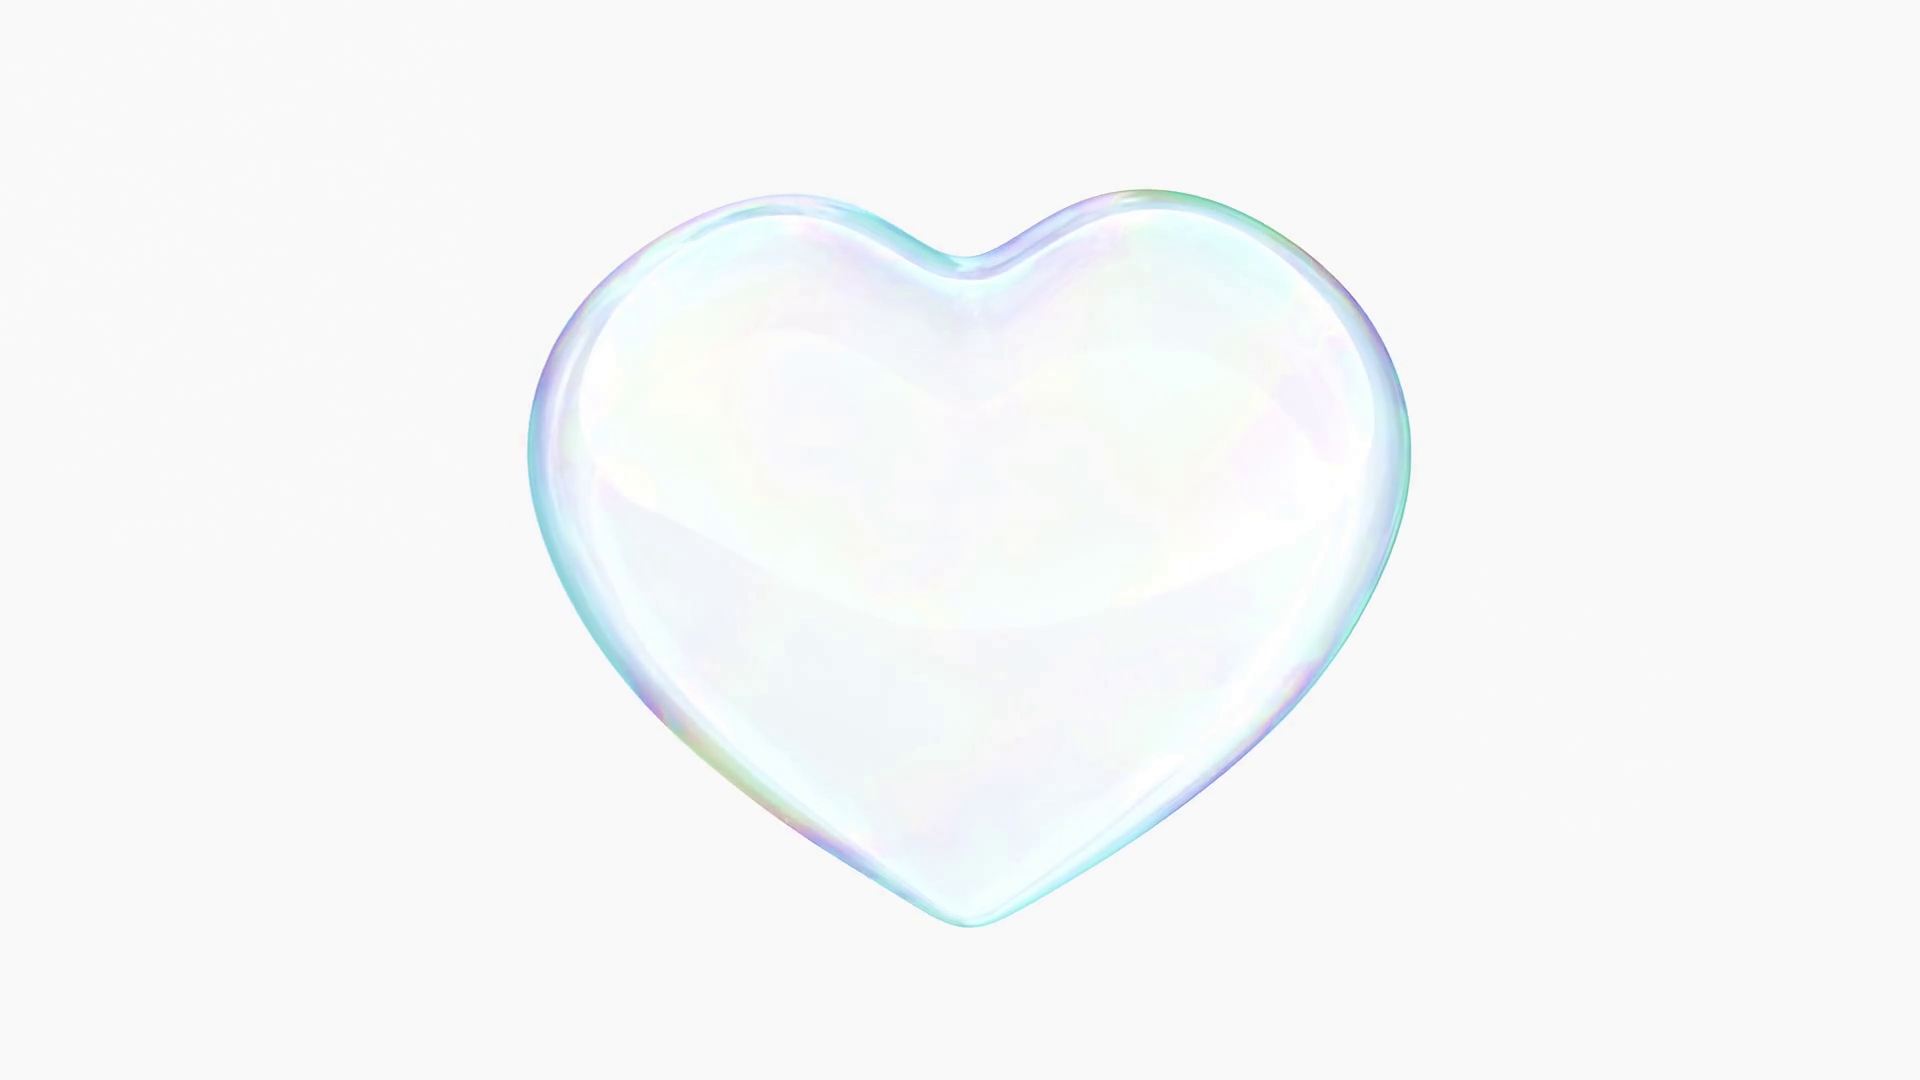 Soap bubble in shape of heart beats in the middle of the screen ...